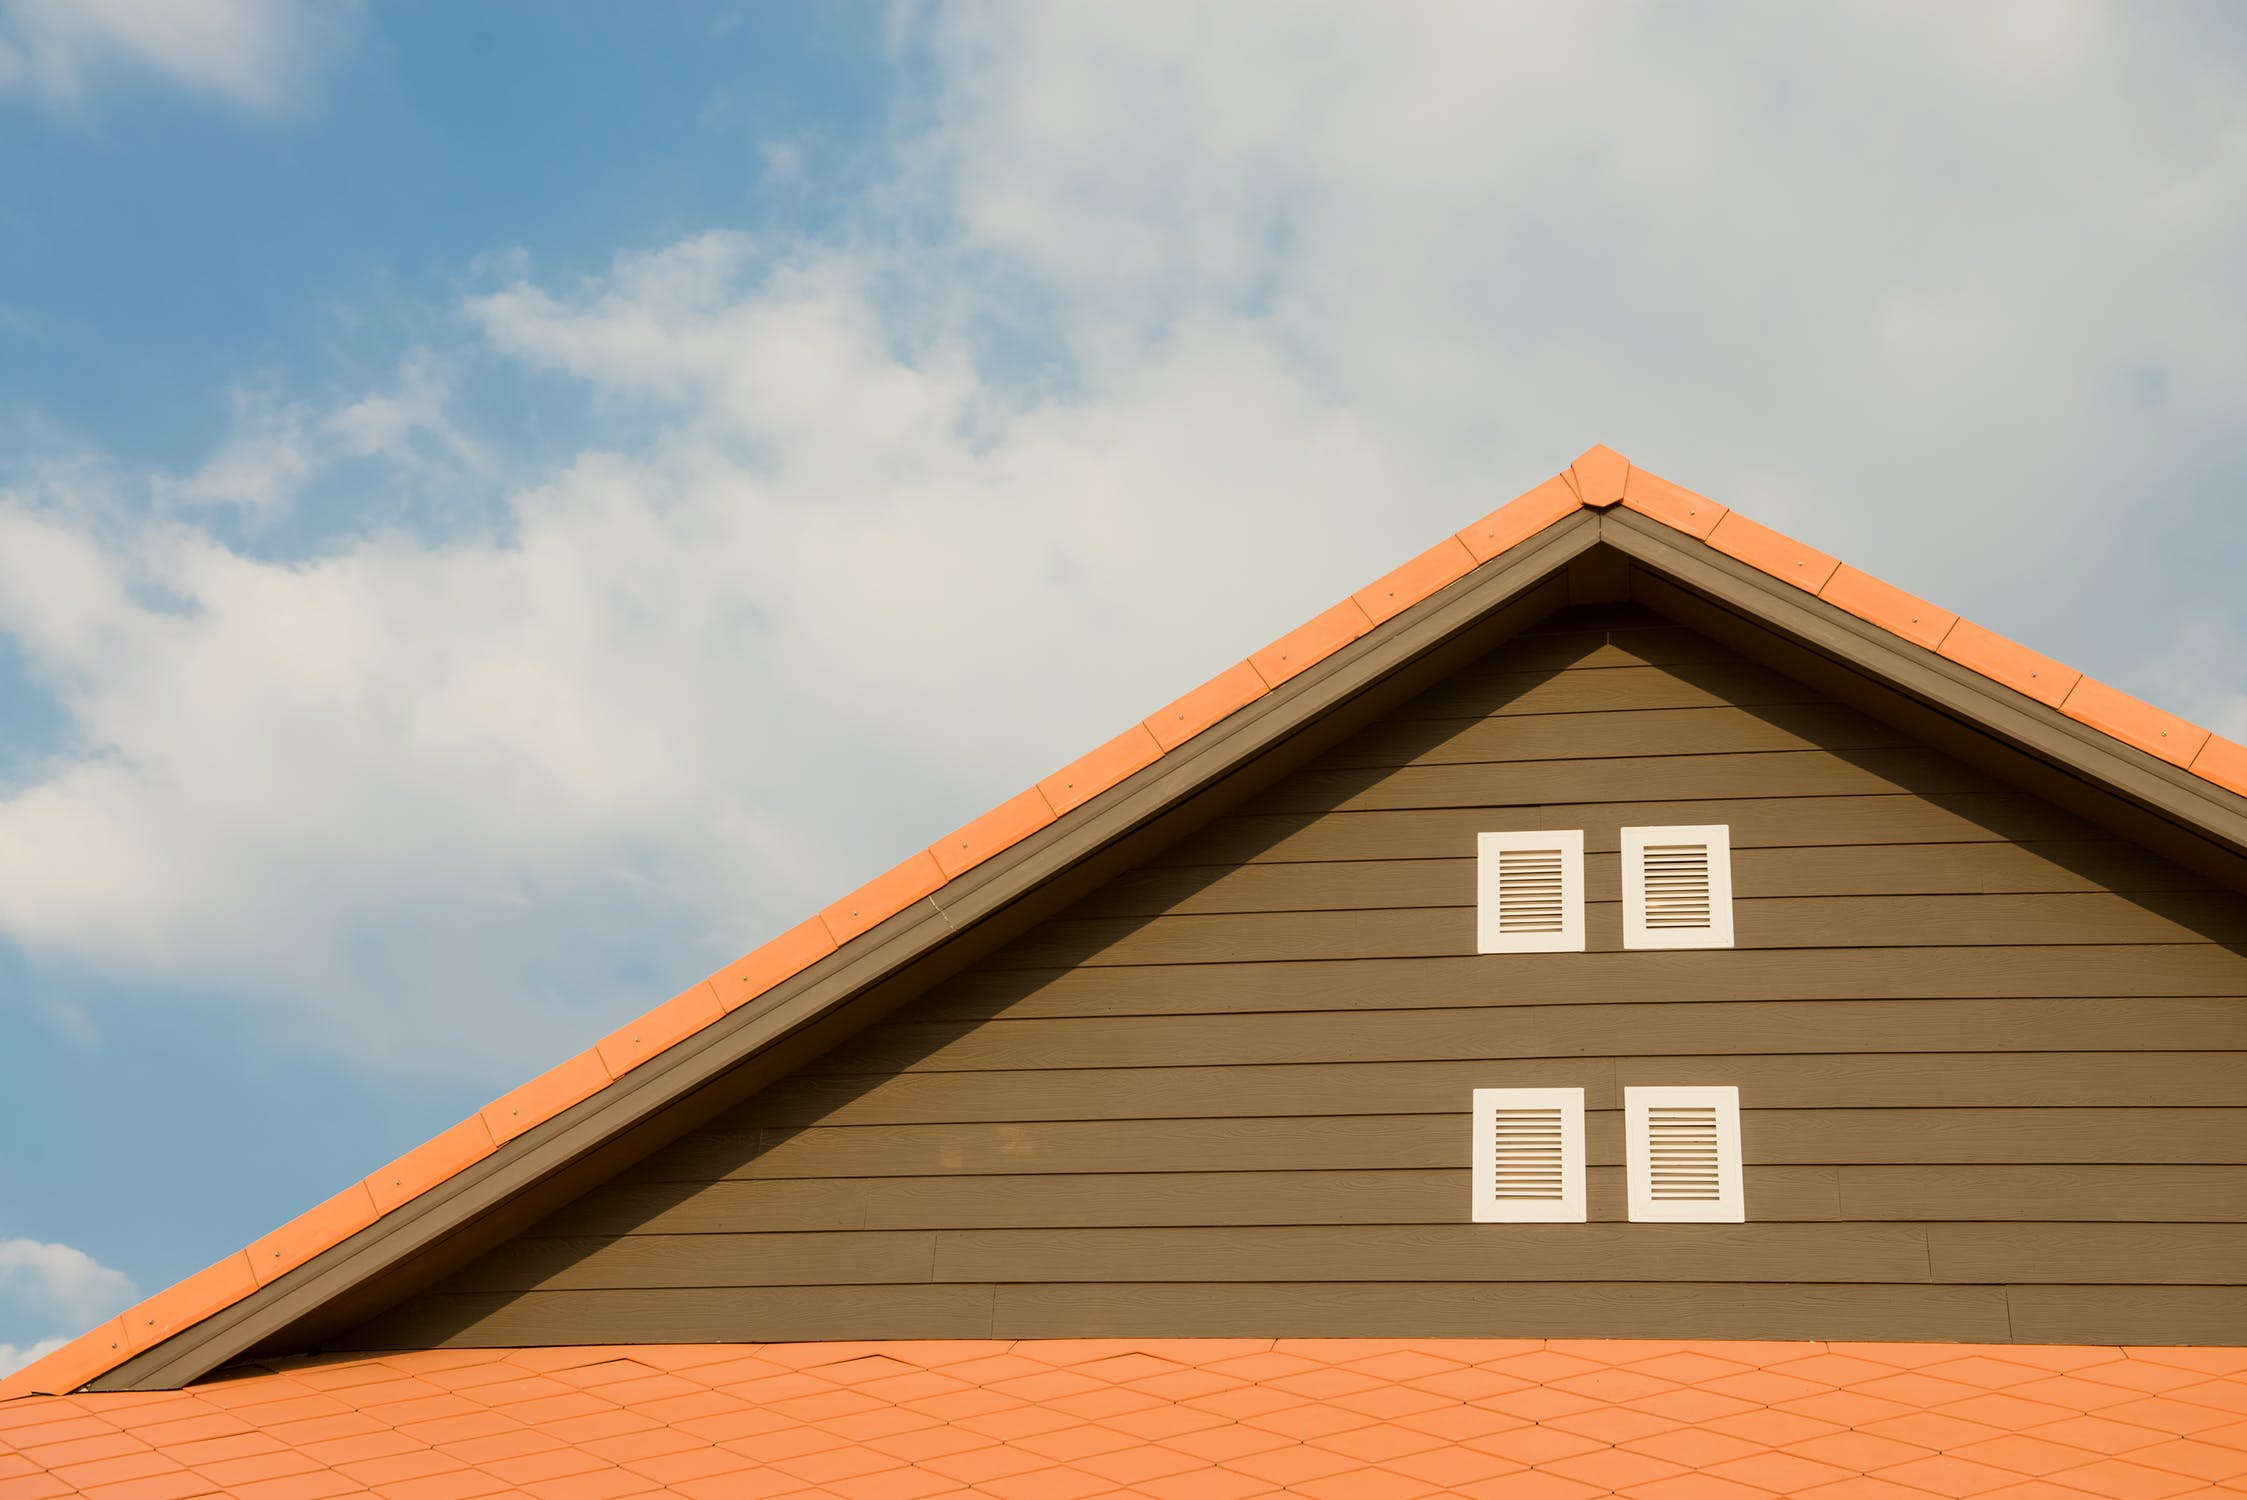 The Top 10 Reasons to Choose Garner Roofing and Certainteed Siding